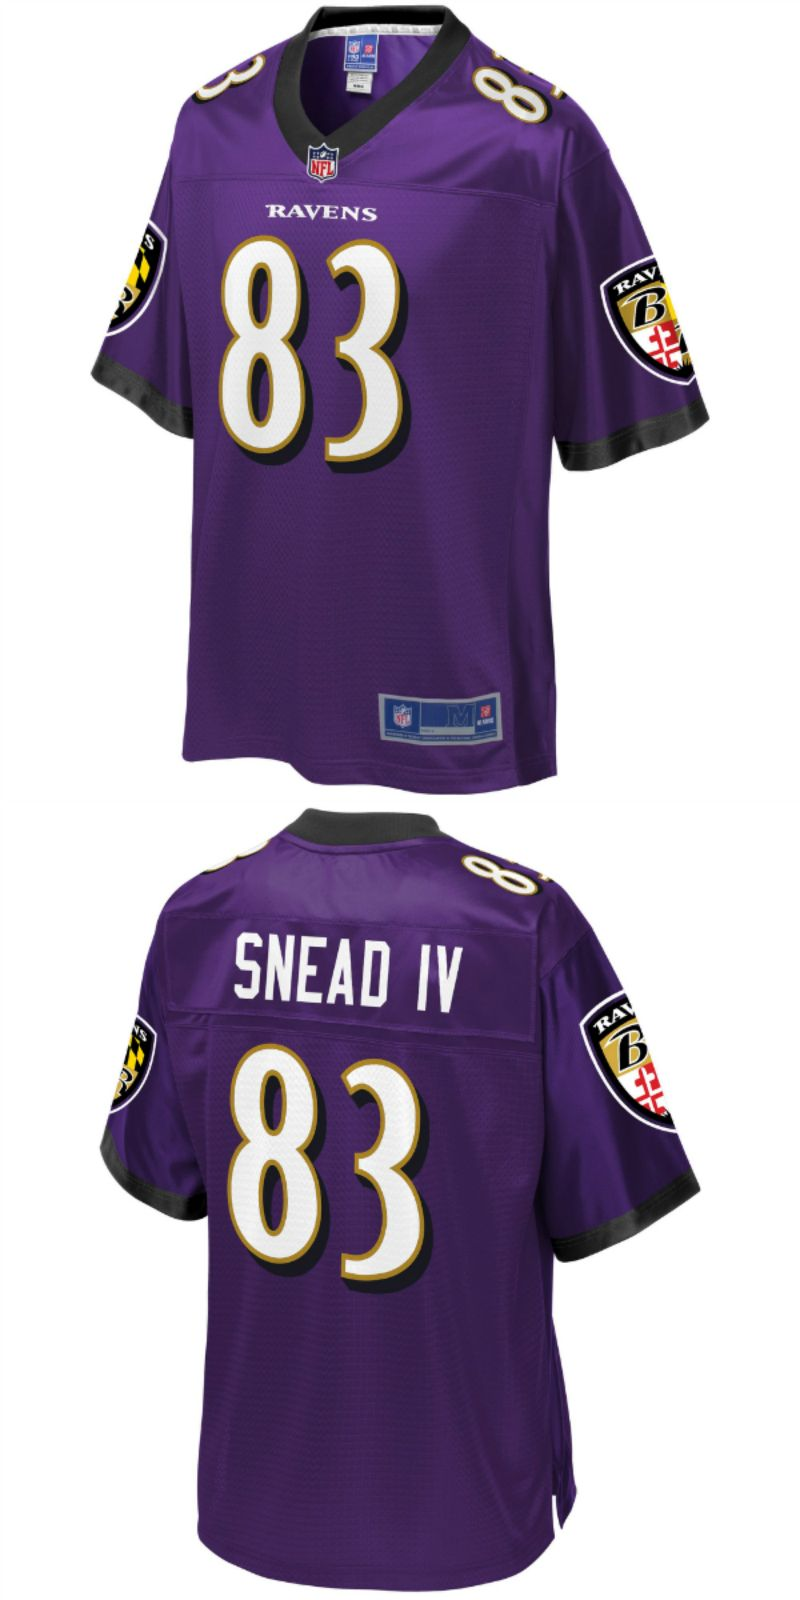 cheaper 3e856 8cd00 UP TO 70% OFF. Willie Snead Baltimore Ravens NFL Pro Line ...